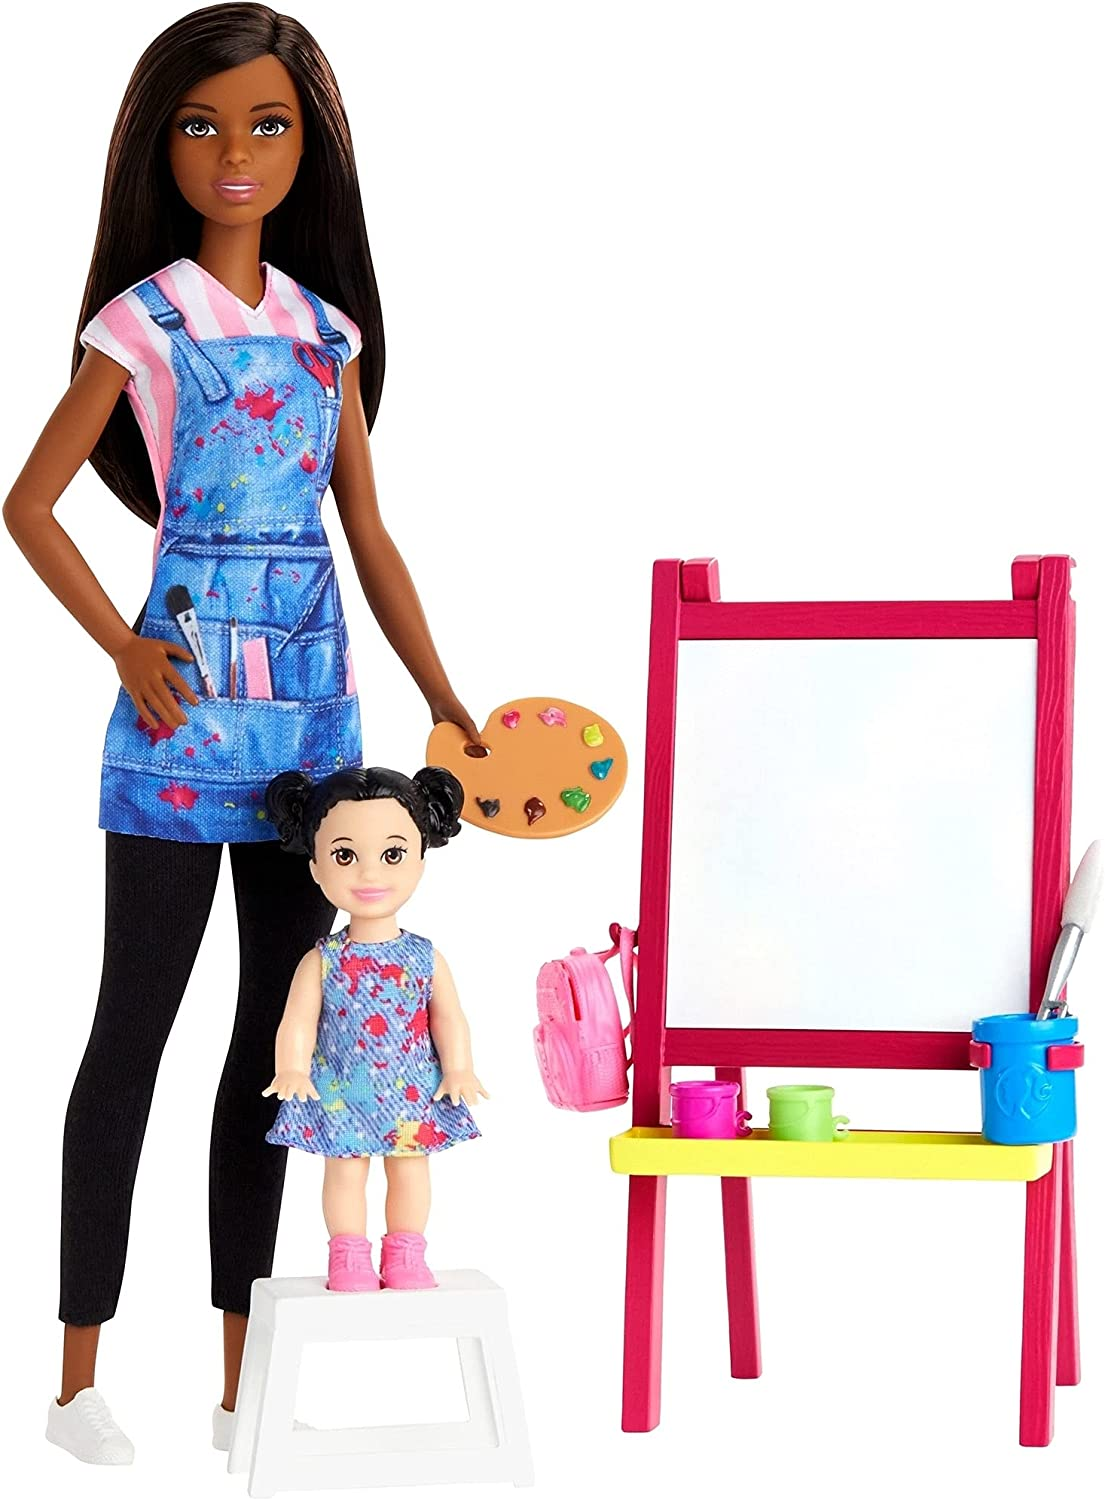 Clearance SALE Limited time Barbie Art Teacher Playset Don't miss the campaign with Doll Brunette Toddler Toy